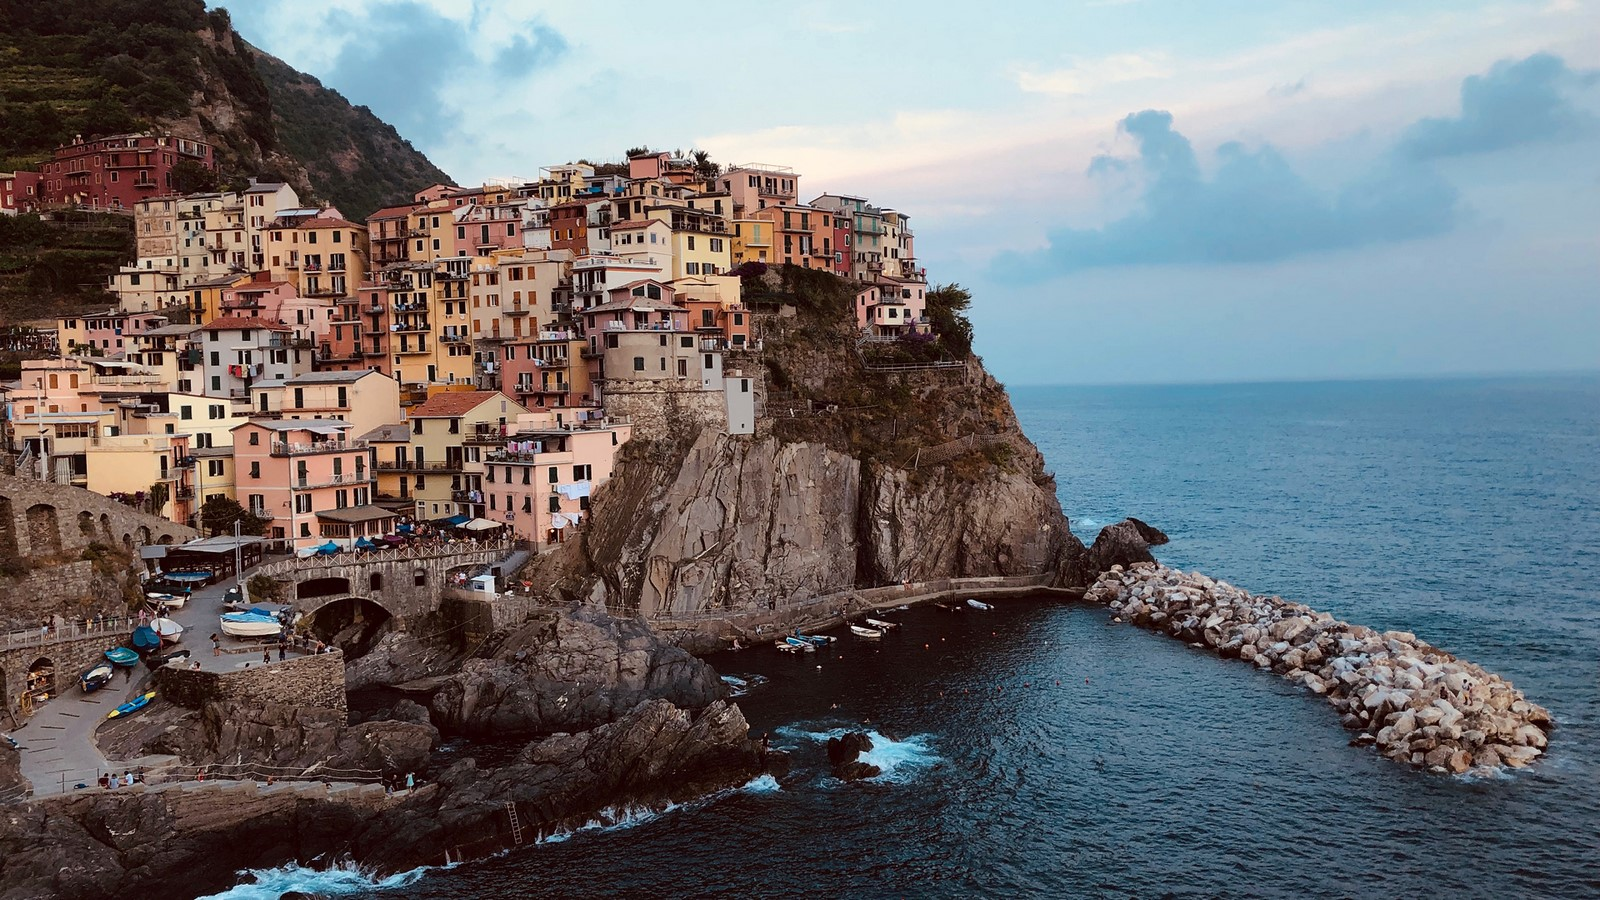 15 Famous villages around the world, that architects must visit - Sheet5